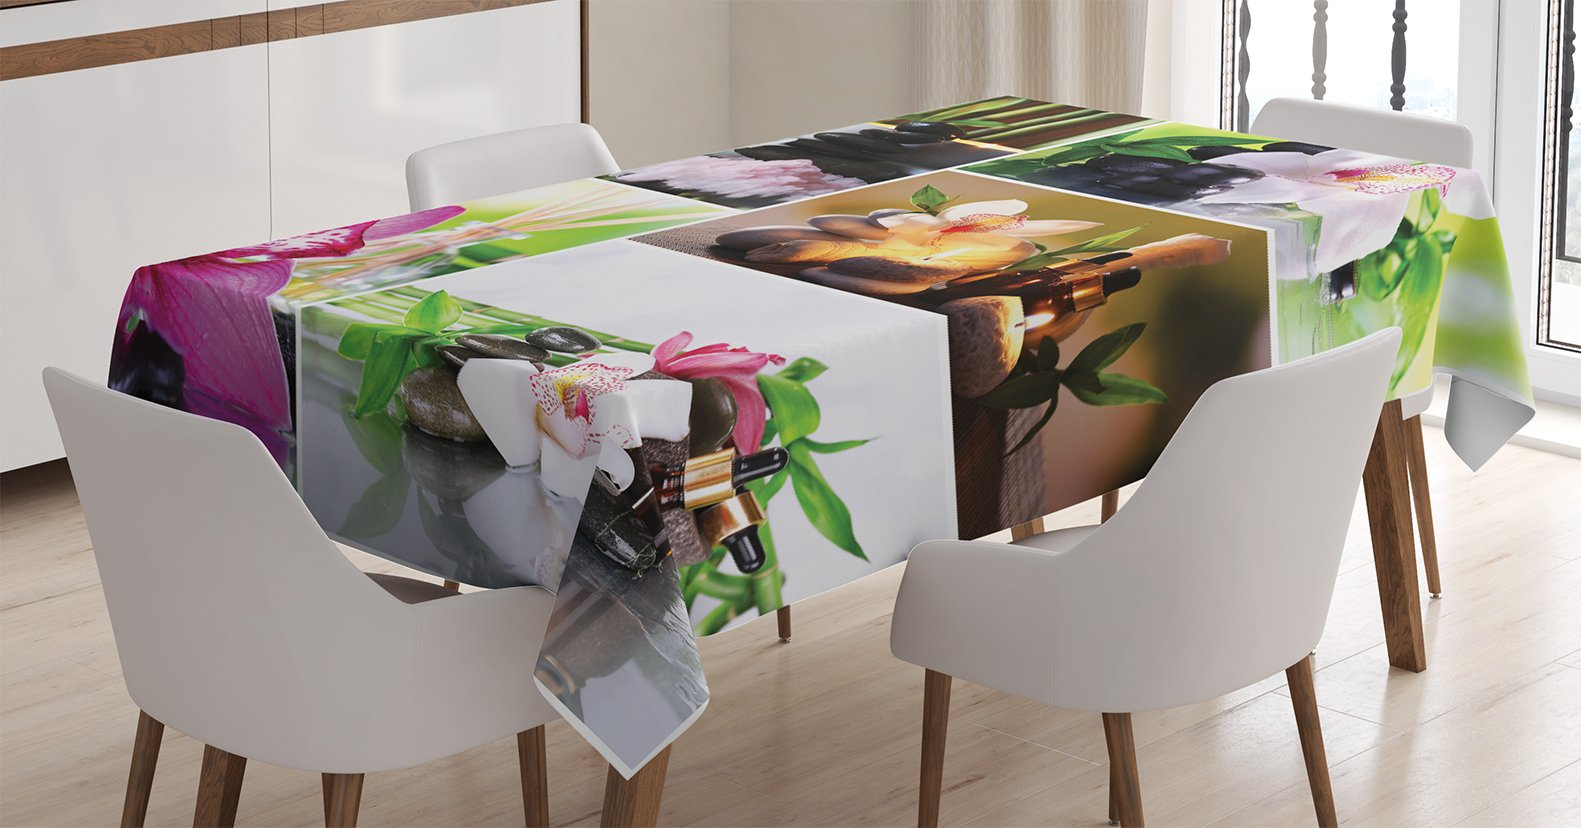 Ambesonne Home Decor Tablecloth, Spa Day Collage with Orchids and Stone Pebbles Natural Herbal Oils Body and Mind Treatment Decor, Dining Room Kitchen Rectangular Table Cover, 60 X 90 inches